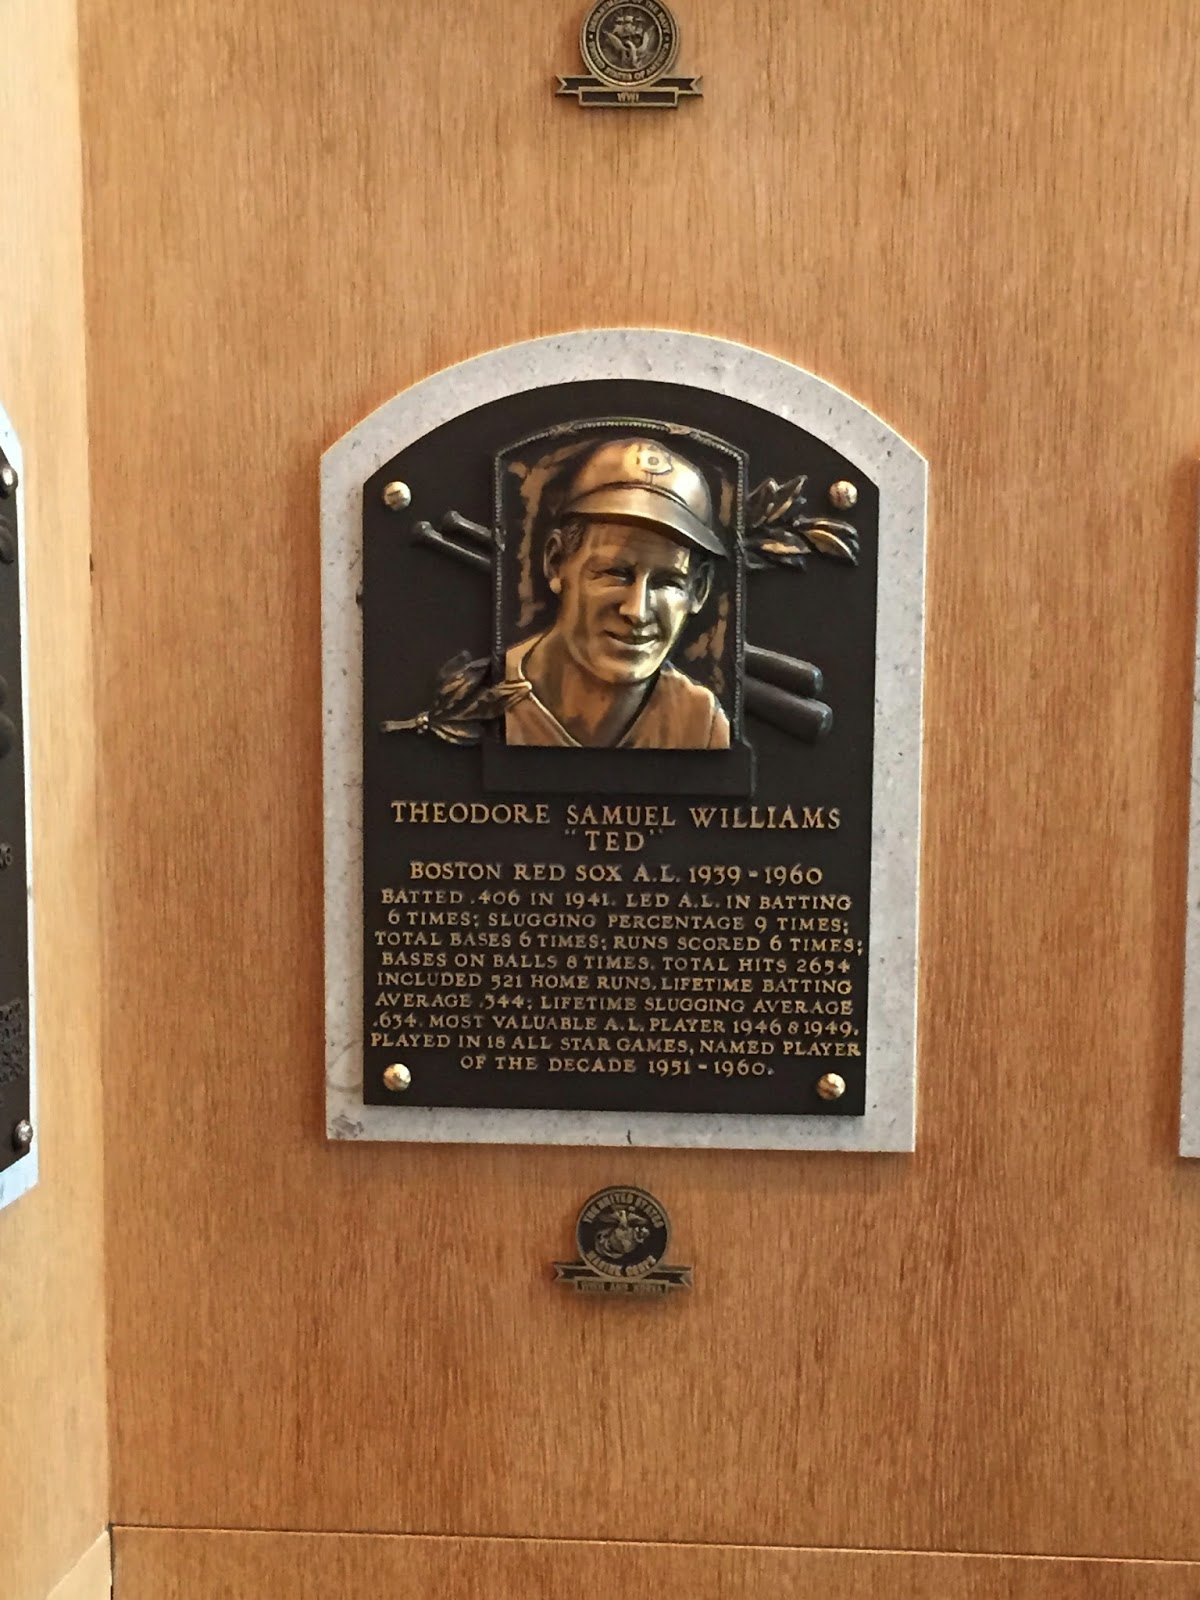 Ted Williams Hall of Fame